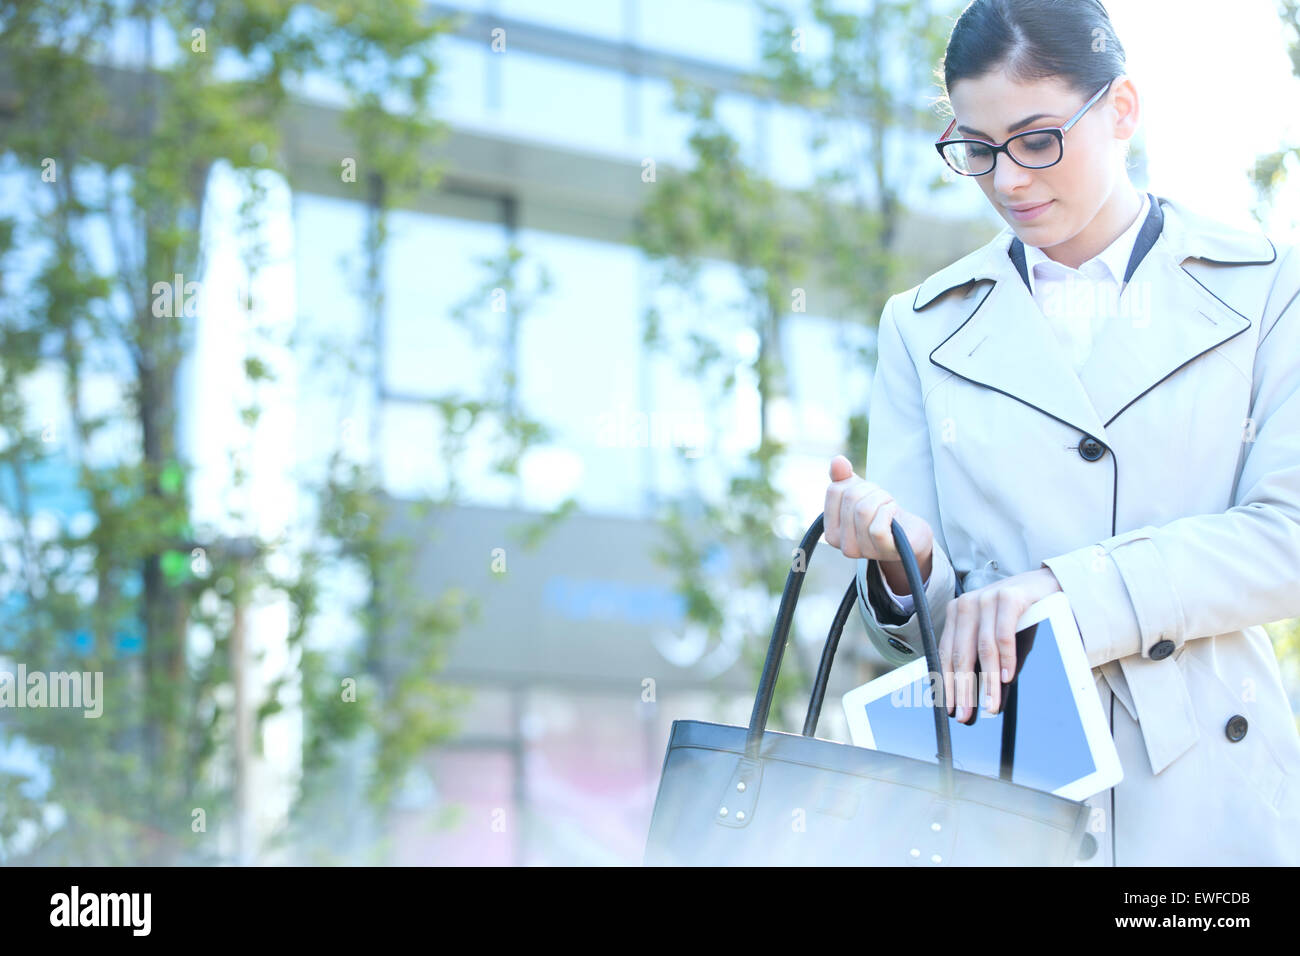 Businesswoman putting digital tablet in purse outdoors Stock Photo